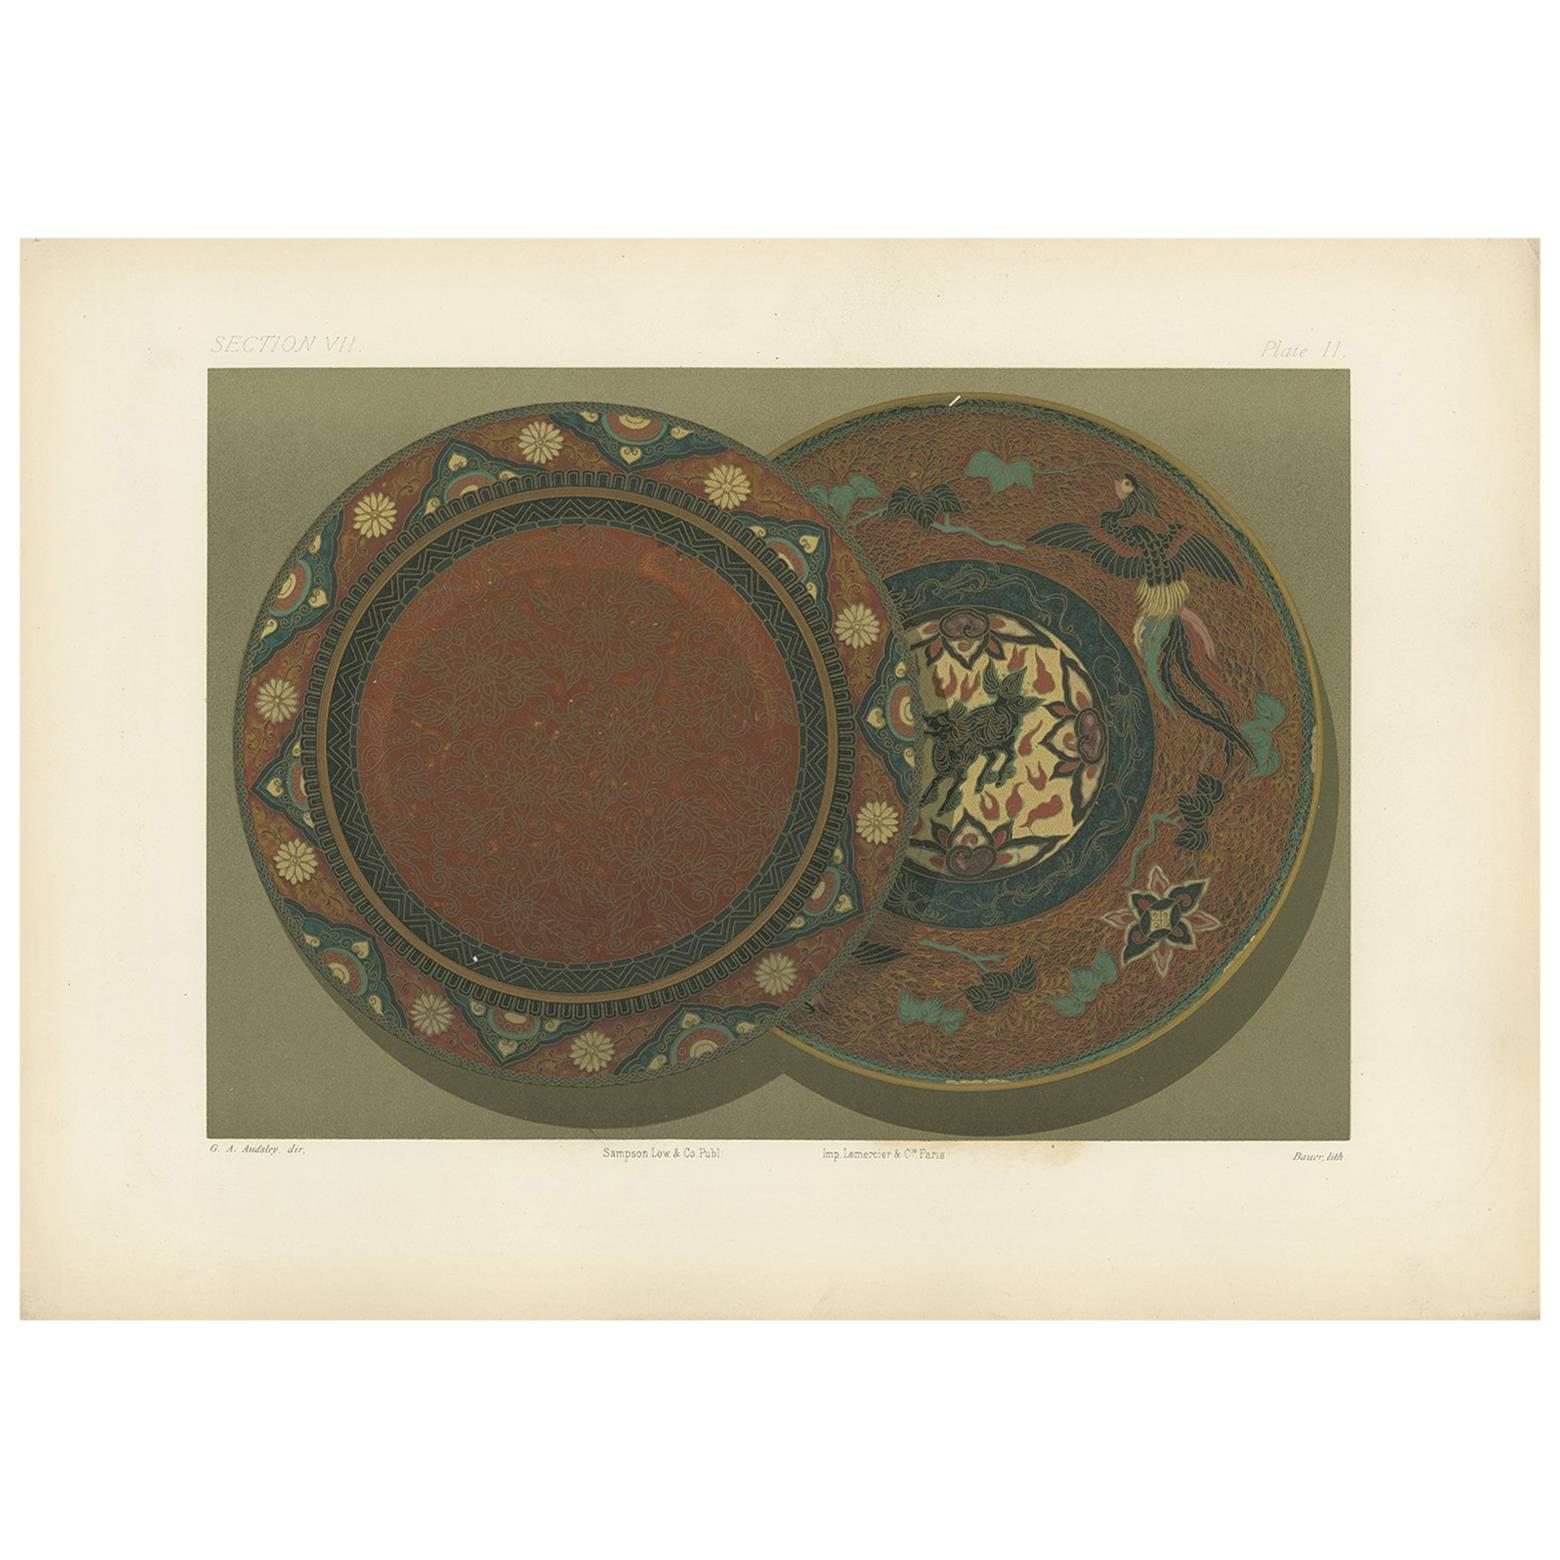 Antique Print of a small Japanese Dish by G. Audsley, 1884